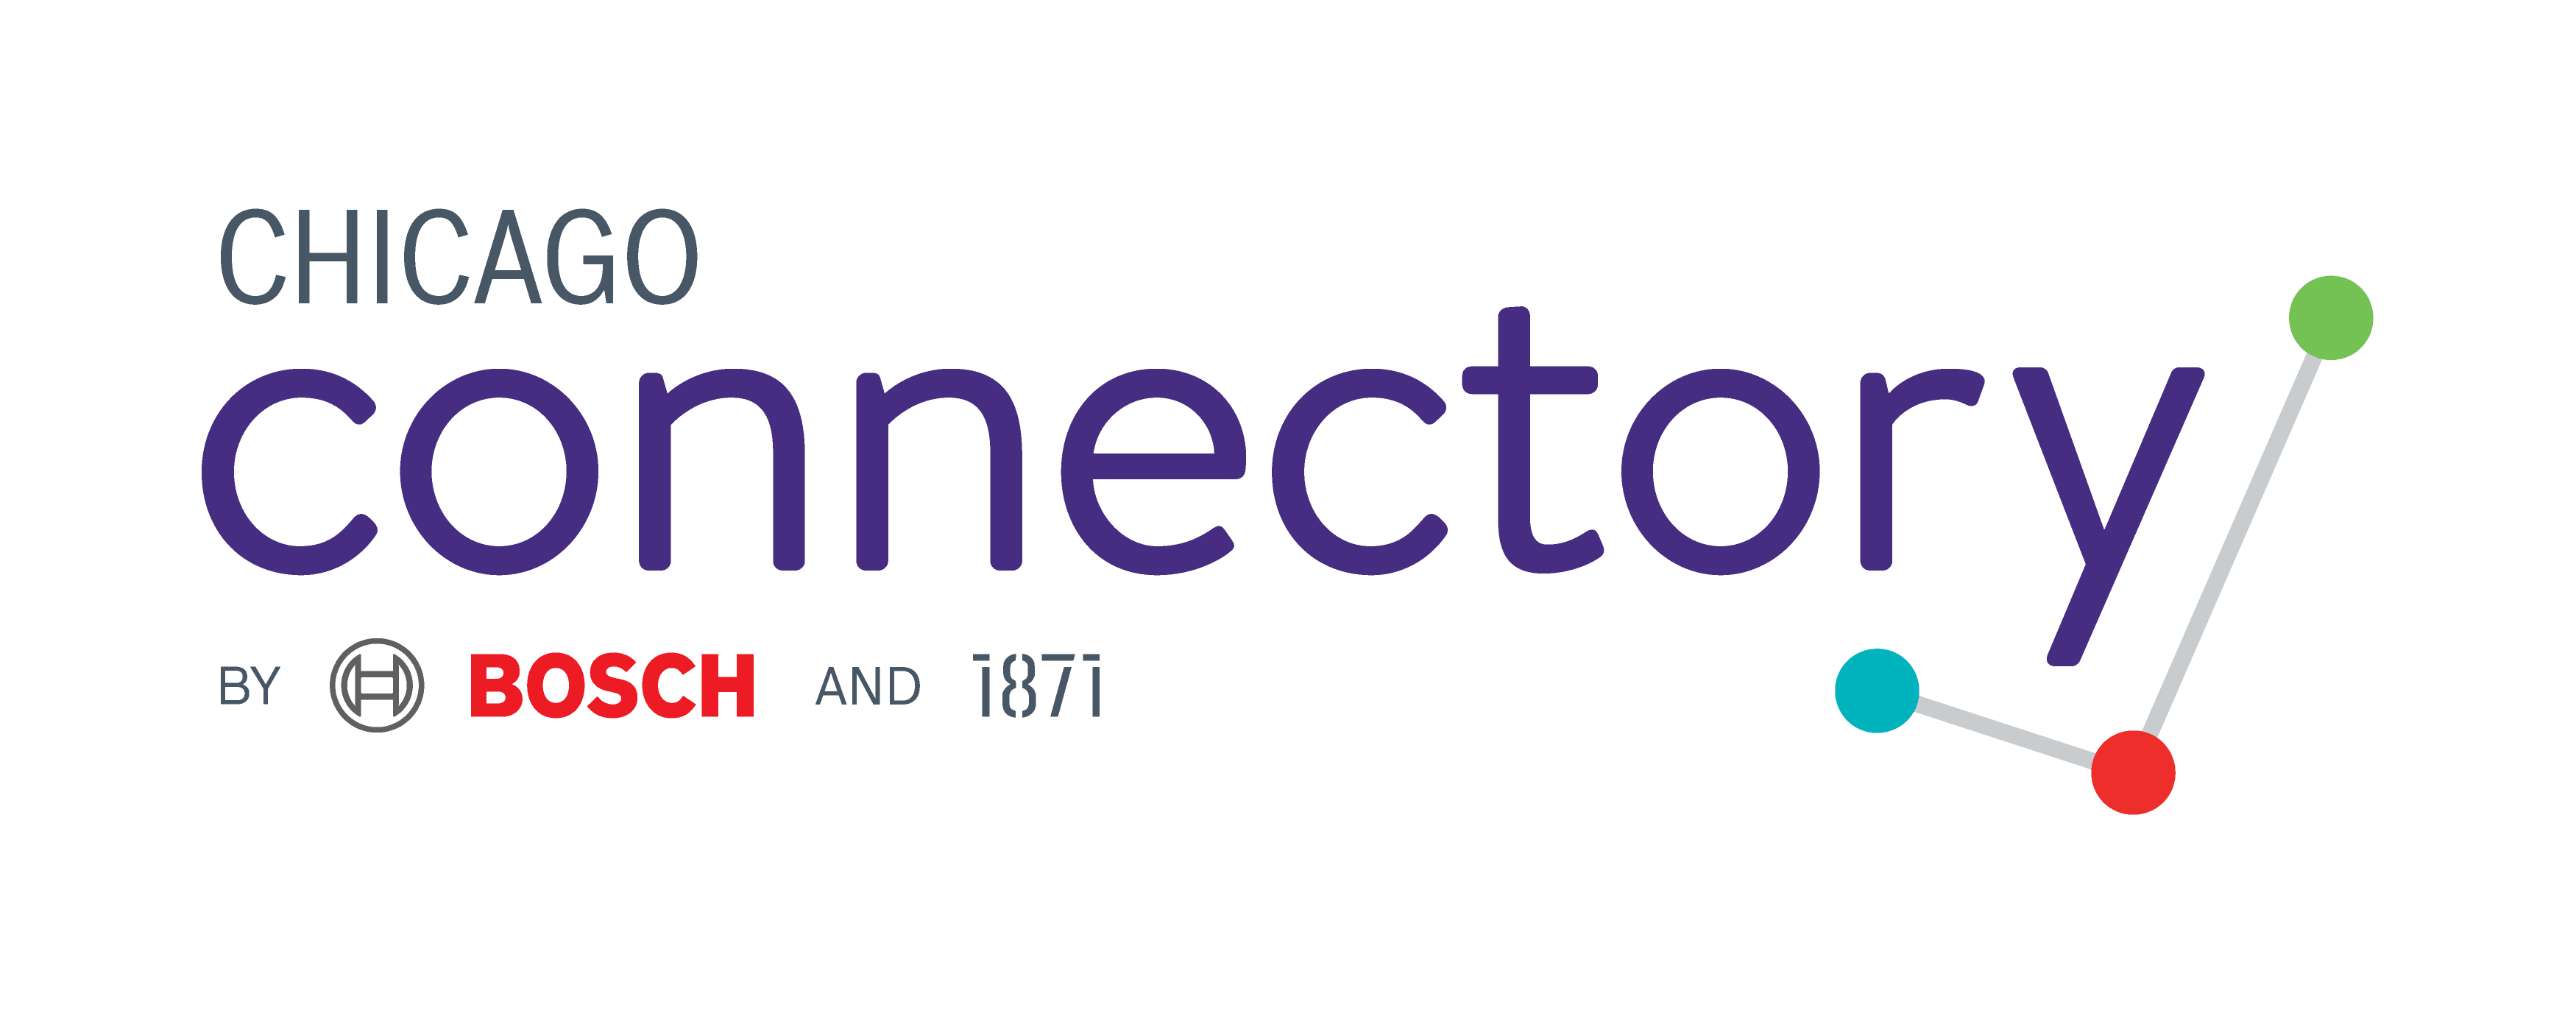 Chicago Connectory Logo